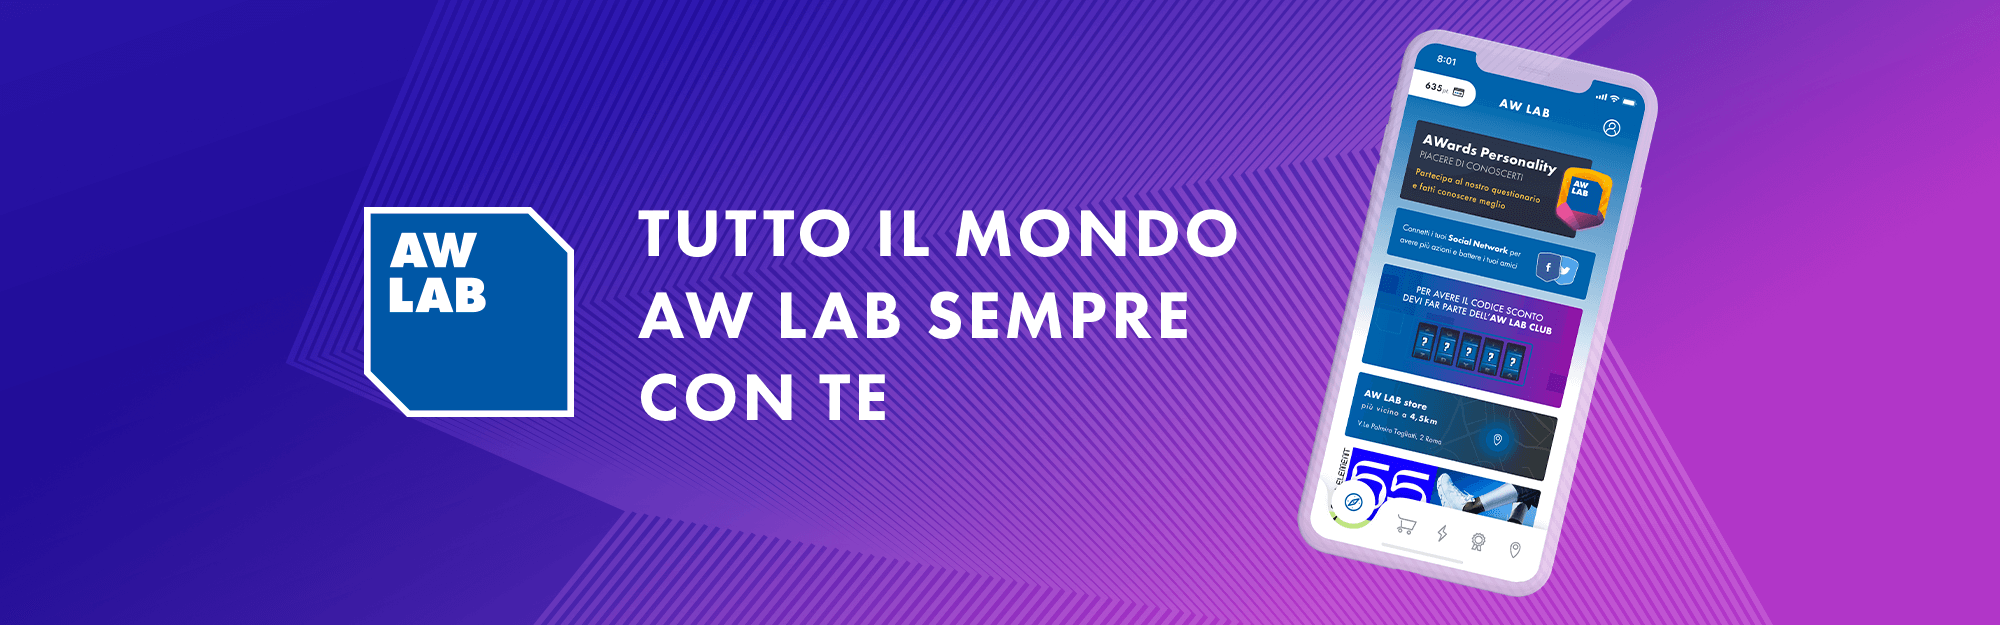 AW LAB evolve la sua loyalty con l'integrazione di Fanize, la fan engagement platform di IQUII